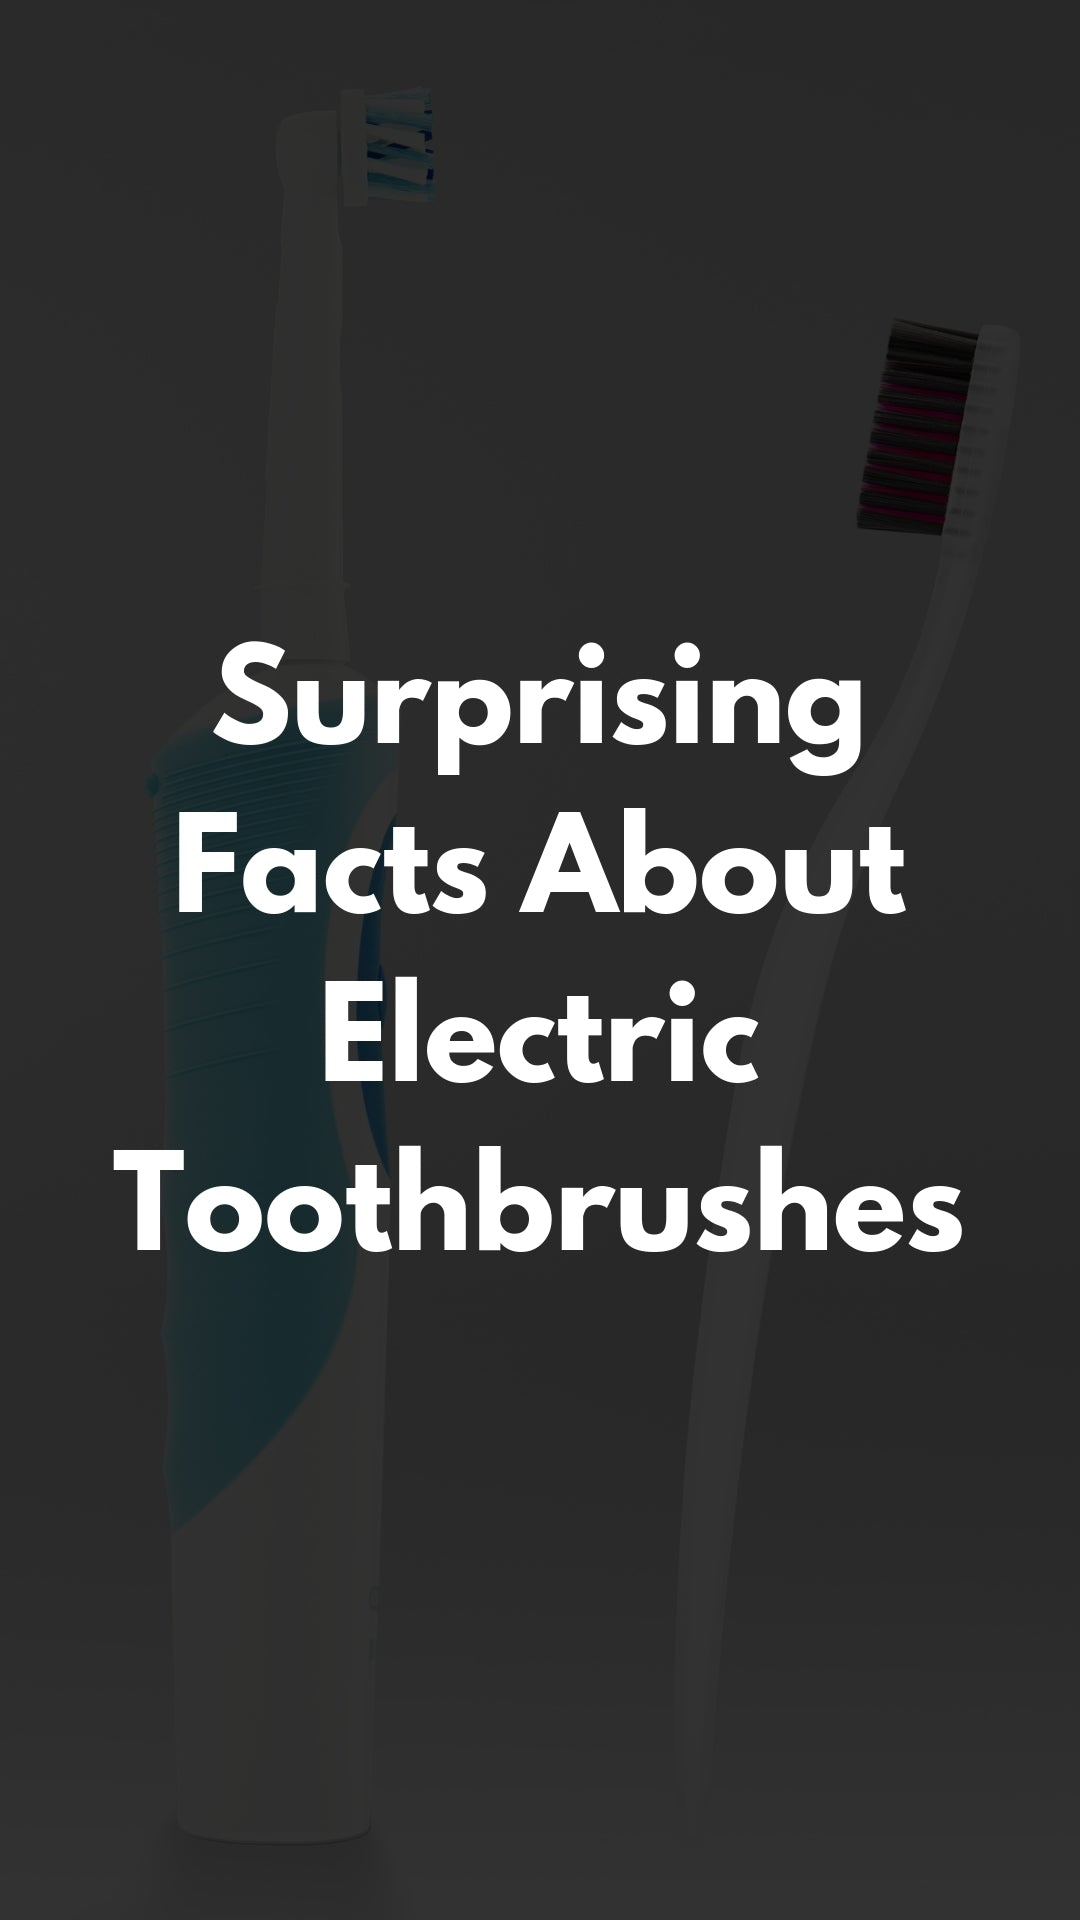 Surprising Facts About Electric Toothbrushes